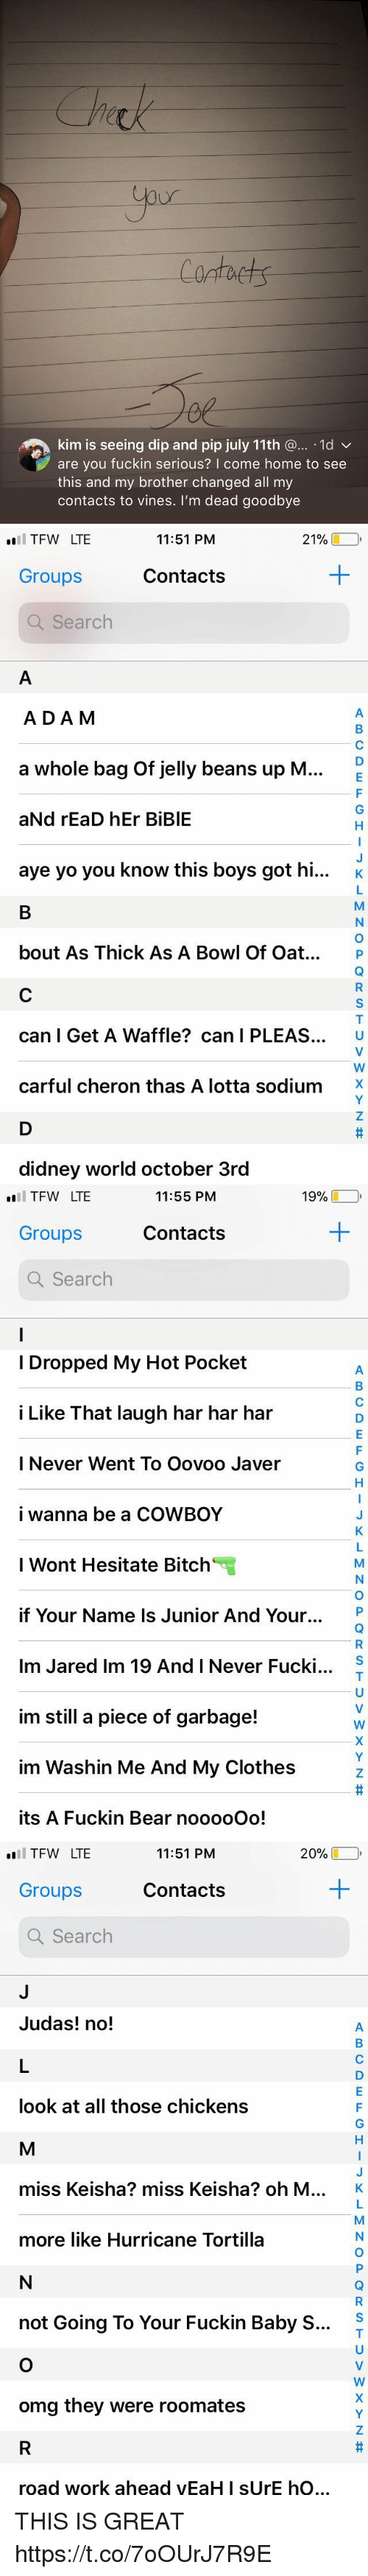 """Bitch, Clothes, and Omg: Contaets  kim is seeing dip and pip july 11th @... .1d v  are you fuckin serious? I come home to see  this and my brother changed all my  contacts to vines. I'm dead goodbye   TFW LTE  Groups  Q Search  11:51 PM  21%し  Contacts  ADA M  a whole bag of jelly beans up M  aNd rEaD hEr BiBlE  aye yo you know this boys got hi...  K  bout As Thick As A Bowl Of Oat. P  can I Get A Waffle? can I PLEAS. U  carful cheron thas A lotta sodium'X  didney world october 3rd   19%-,  l TFW LTE  Groups  Q Search  11:55 PM  Contacts  I Dropped My Hot Pocket  i Like That laugh har har har  I Never Went To Oovoo Javer  i wanna be a COWBOY  I Wont Hesitate Bitch""""  if Your Name Is Junior And Your.  Im Jared Im 19 And I Never Fucki  im still a piece of garbage!  im Washin Me And My Clothes  its A Fuckin Bear nooooOo!  S   20% □  l TFW LTE  Groups  Q Search  11:51 PM  Contacts  Judas! no!  look at all those chickens  miss Keisha? miss Keisha? oh M  K  more like Hurricane Tortilla  S  not Going To Your Fuckin Baby S...  omg they were roomates  ro  ad work ahead yEaH I sUrE  hO THIS IS GREAT https://t.co/7oOUrJ7R9E"""